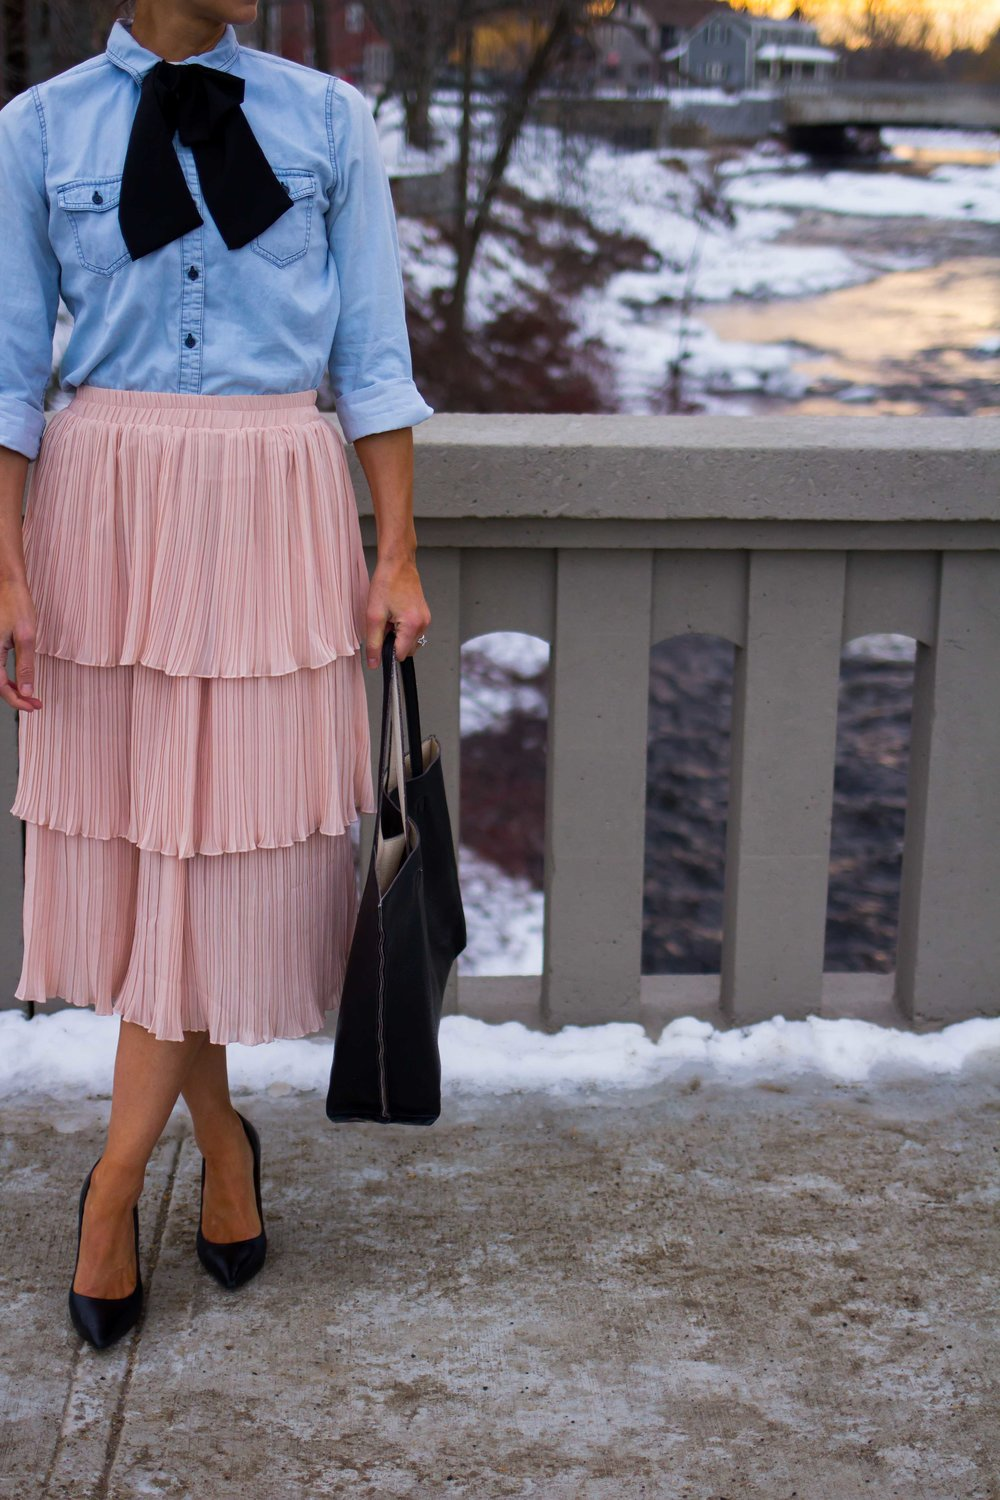 Midi Skirt Outfits - Tiered Skirt Outfits -Ruffle Midi Skirt Outfits - Nude Skirt Outfits - Blush Skirt Outfits - Bow Tie for Women - Bow Tie - Chambray Shirt Outfits - Work Outfits for Women - Fashion for Women -  heartandseam.com  #heartandseam